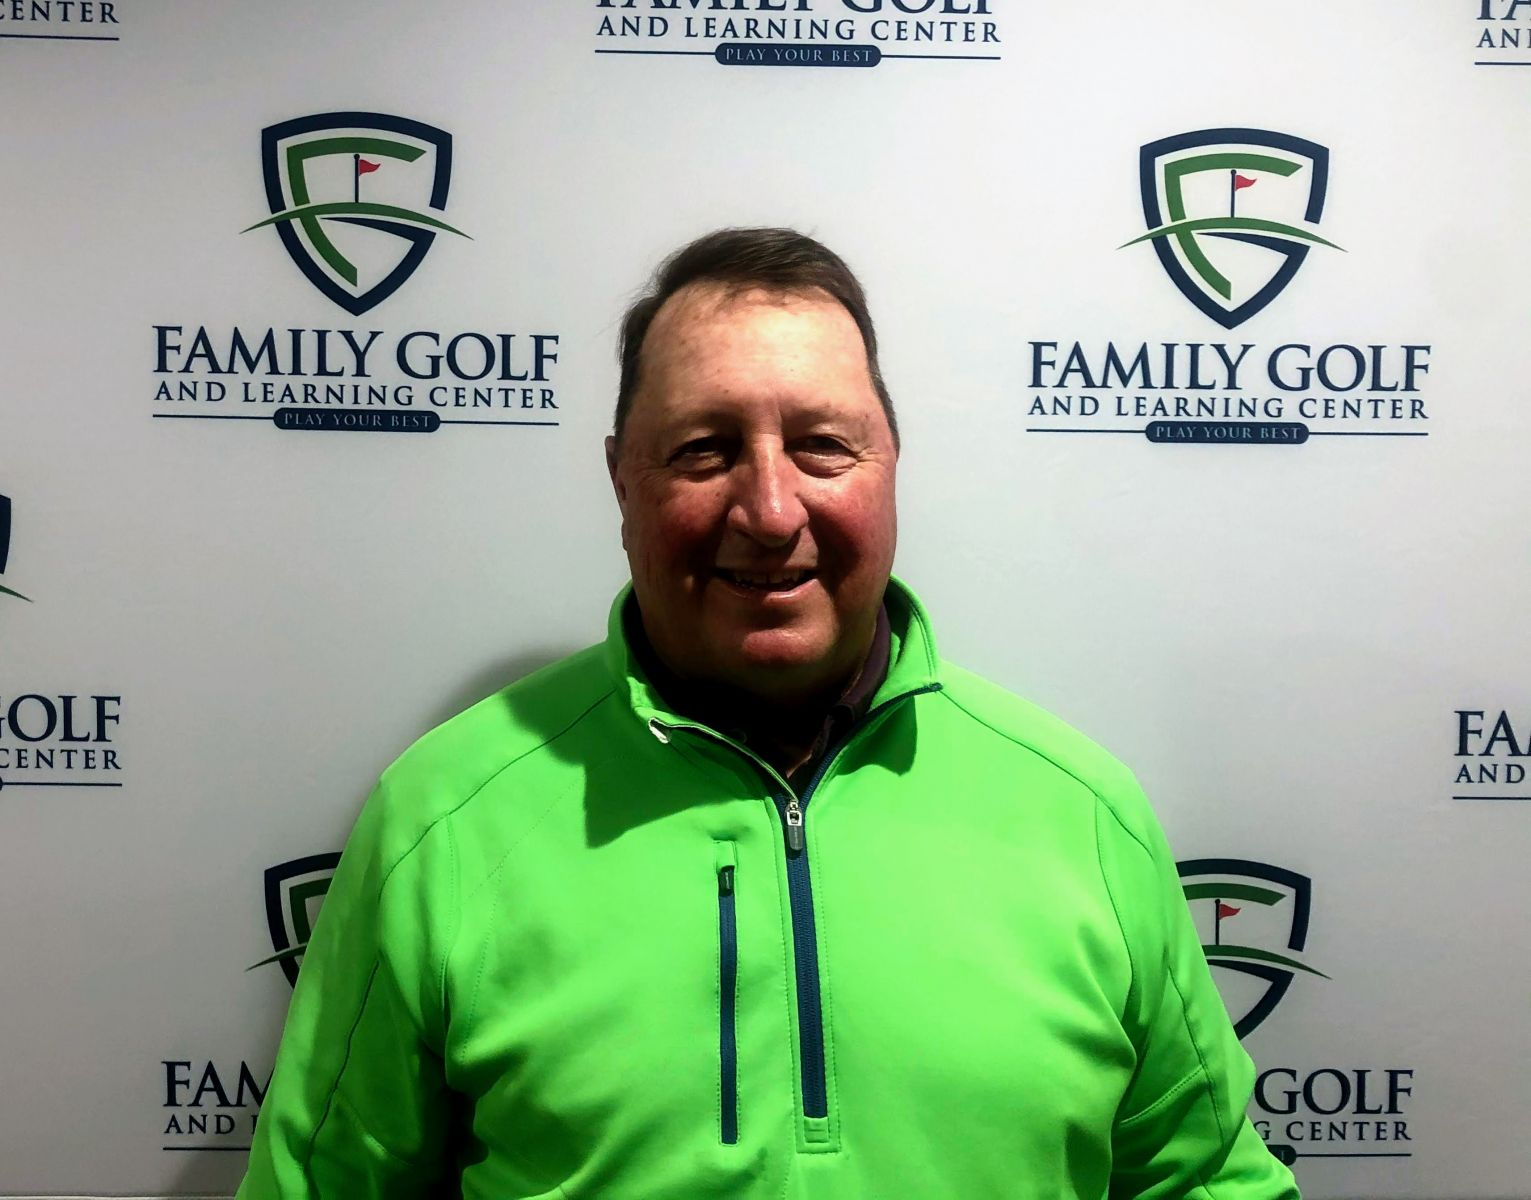 Rob Sedorcek, teaching professional at Family Golf & Learning Center in St. Louis